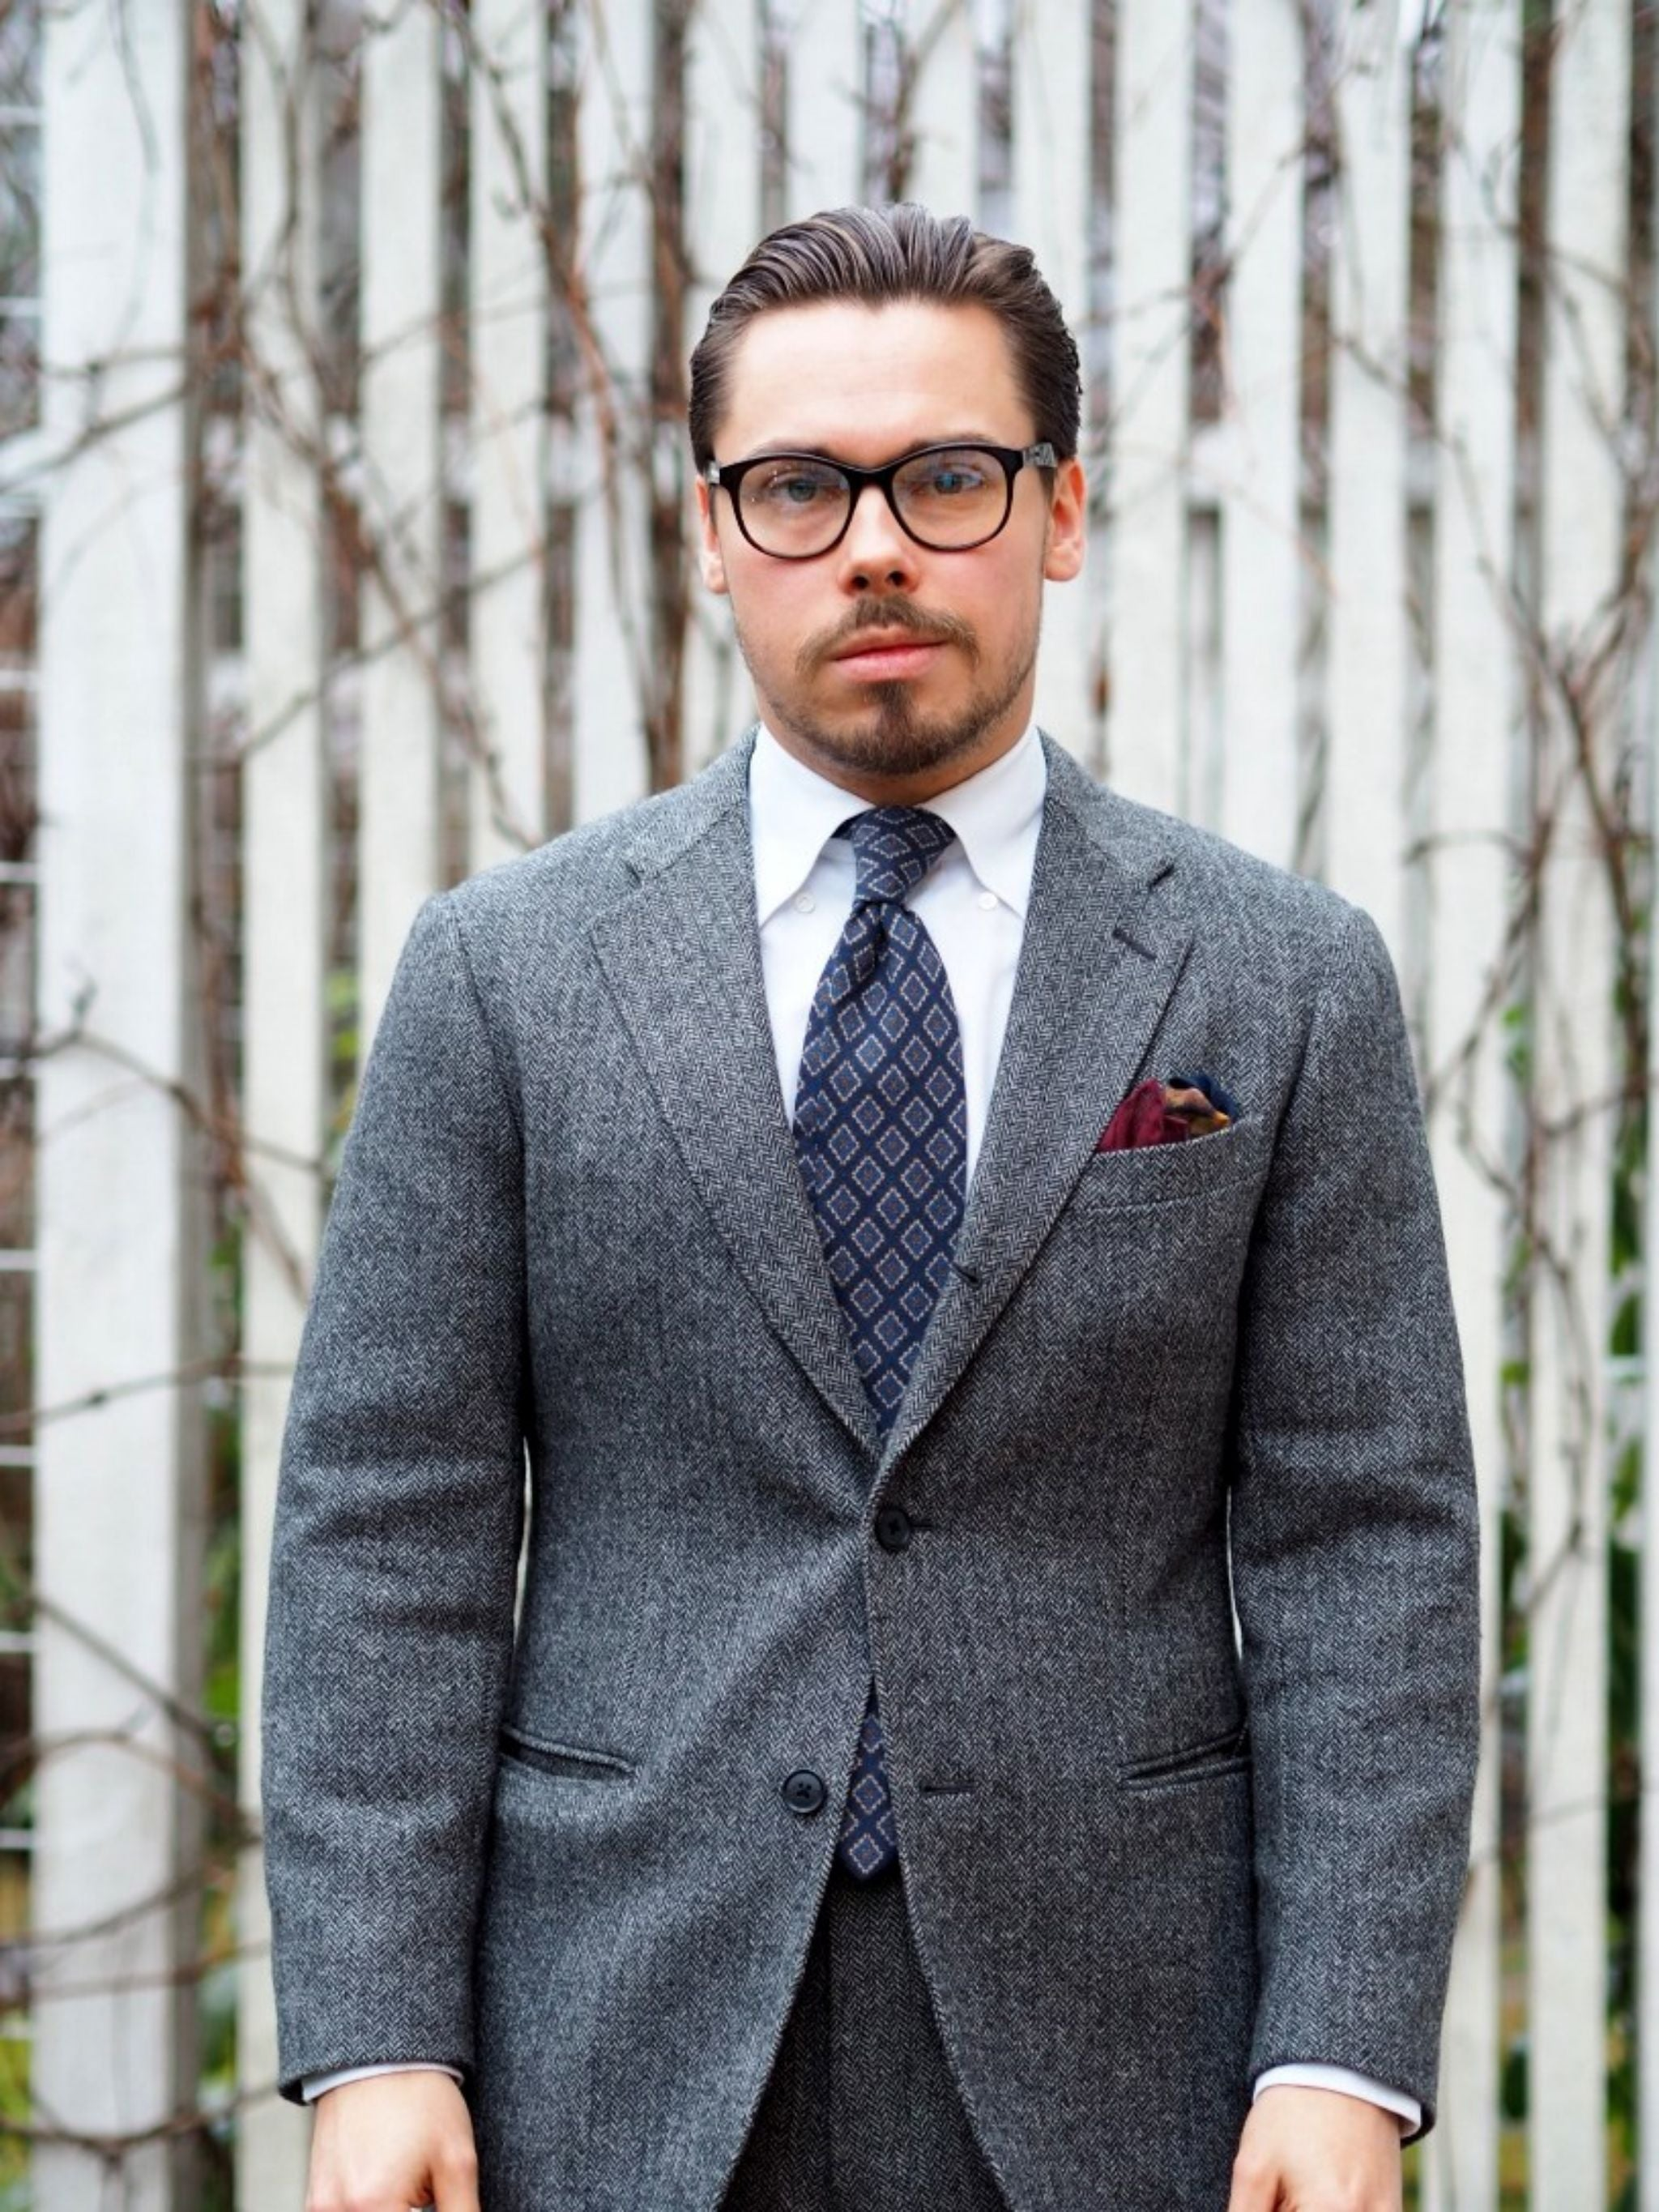 Autumnal business casual outfits - the gray herringbone suit